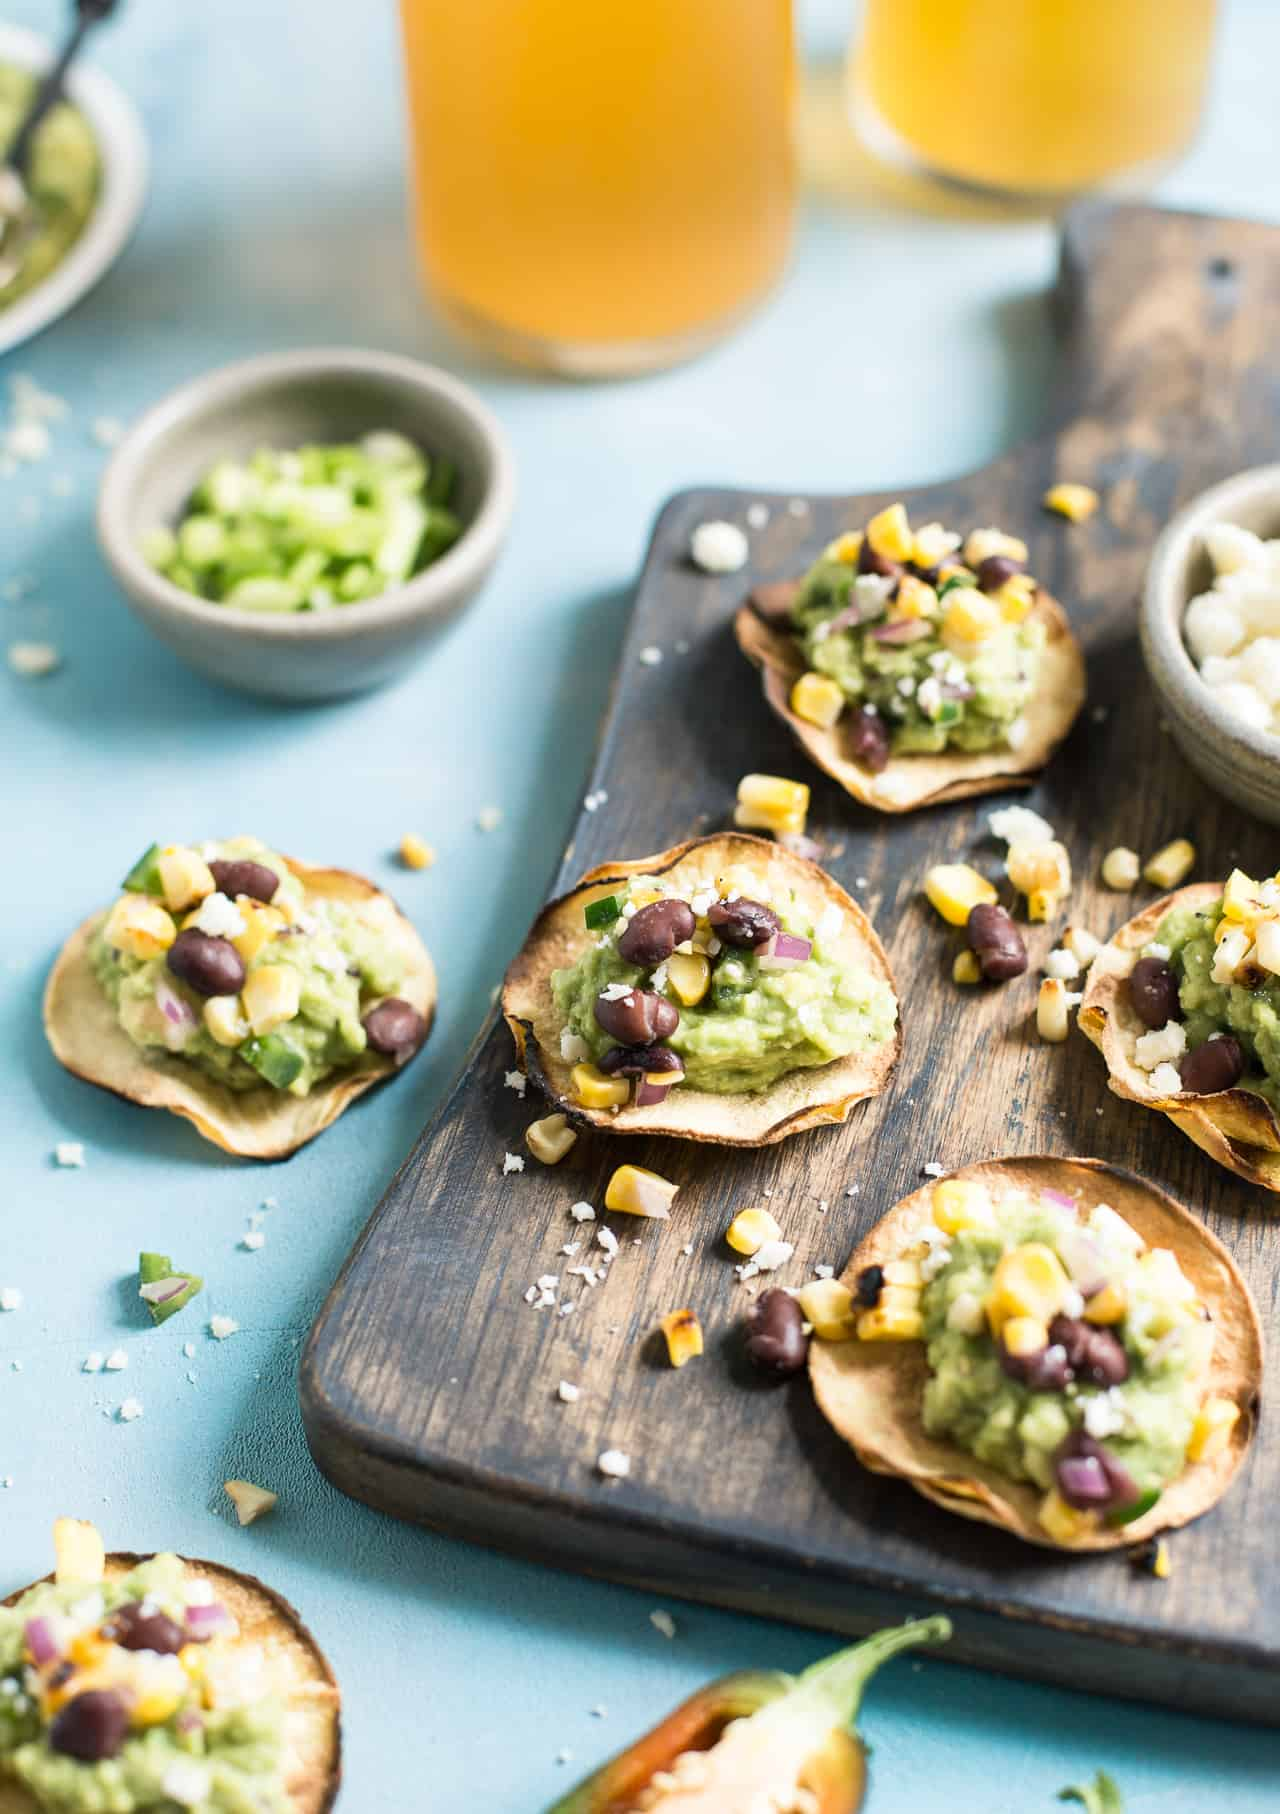 Grilled Corn Salsa & Guacamole Tostadas: This crispy bite-sized appetizer is perfect for football season. They're gluten-free and healthy with a vegan option.